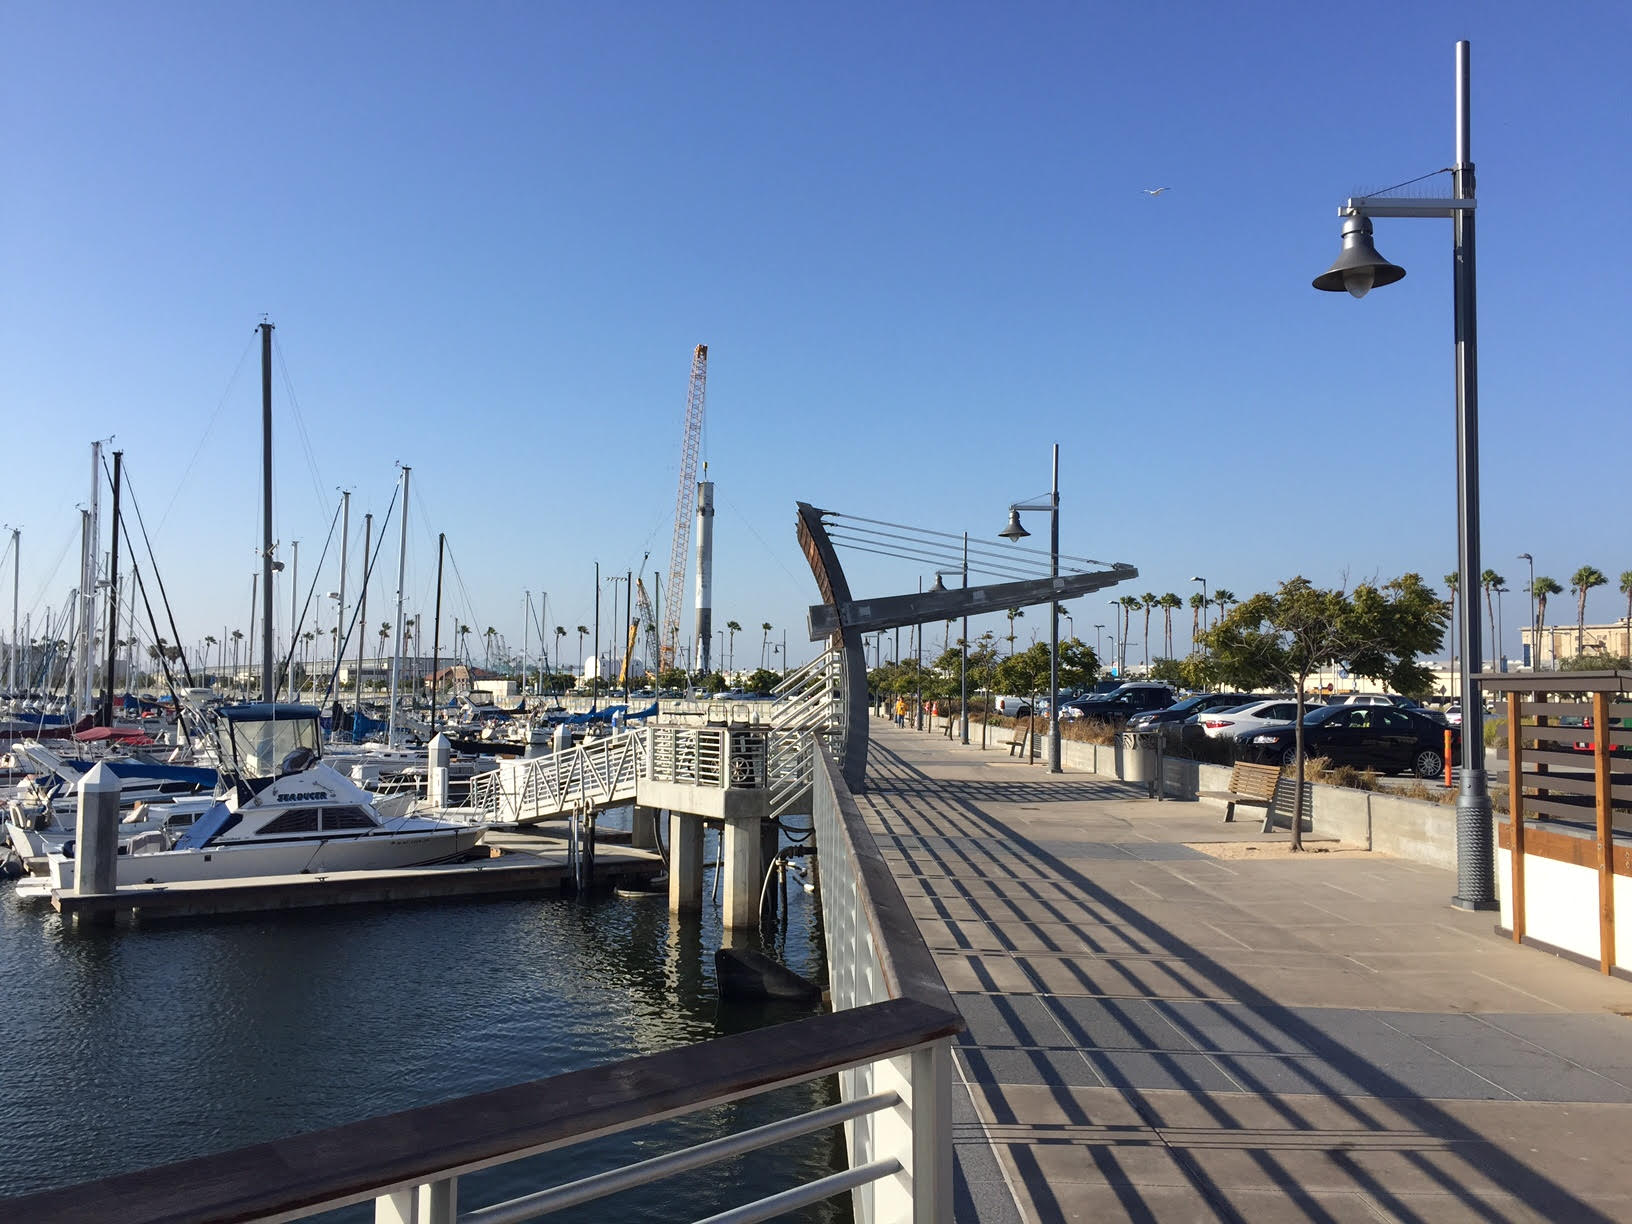 SpaceX Falcon 9 rocket tied up next to our Marina.